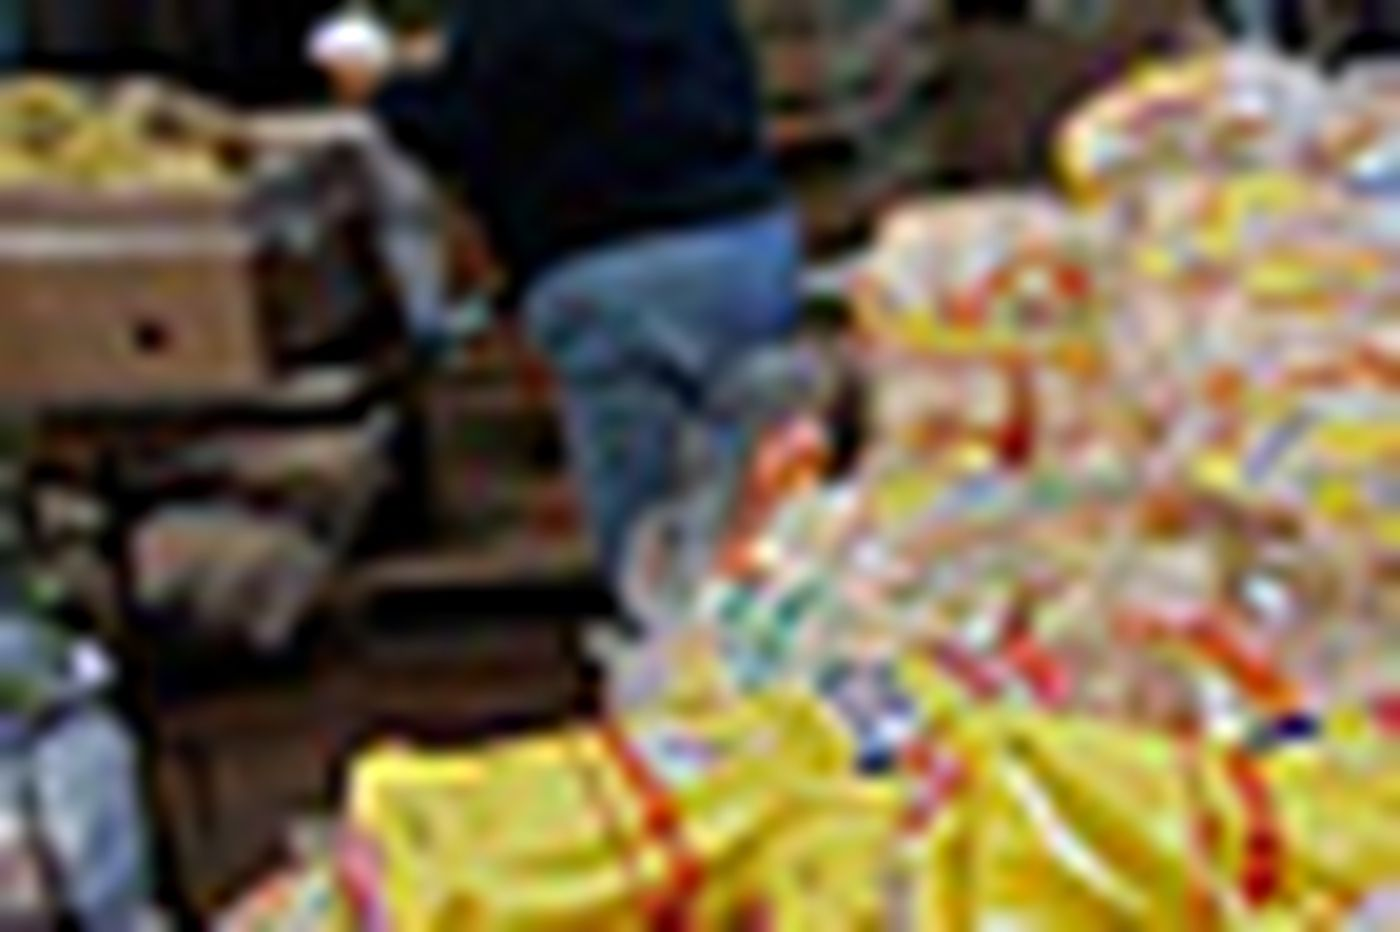 Pennsylvania to impose asset test for food stamps